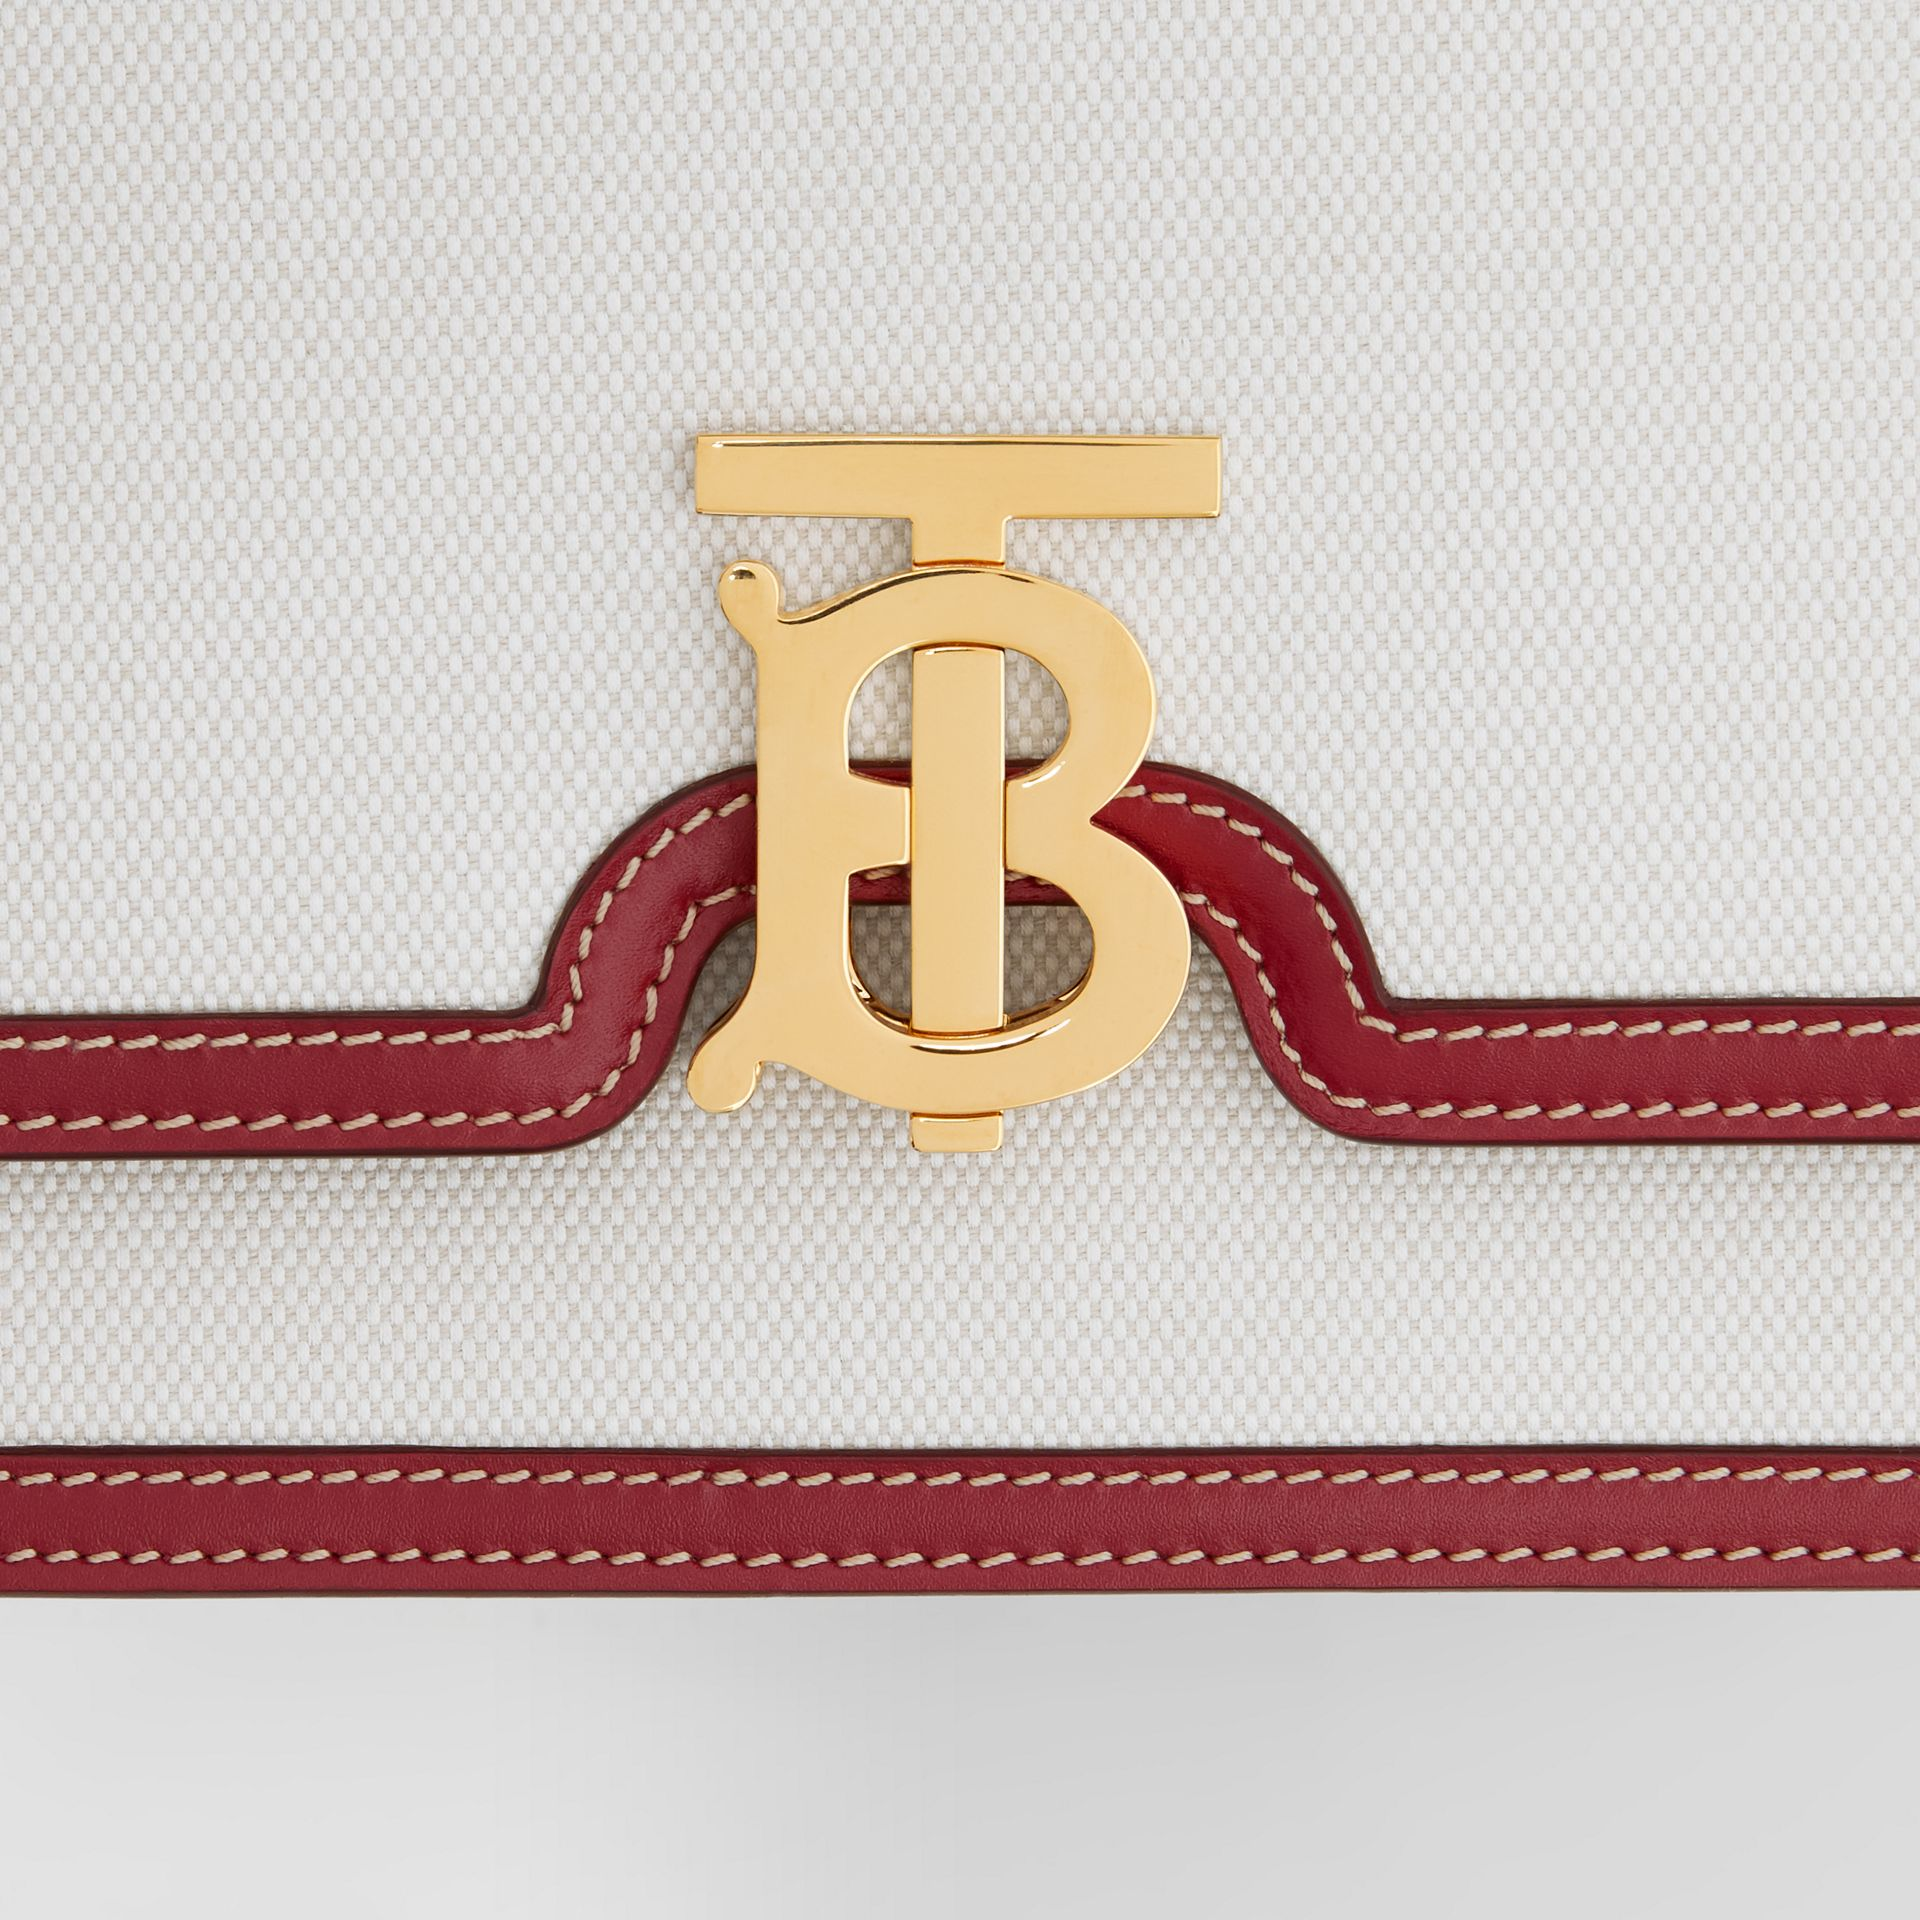 Small Two-tone Canvas and Leather TB Bag in Natural/dark Carmine - Women | Burberry - gallery image 1